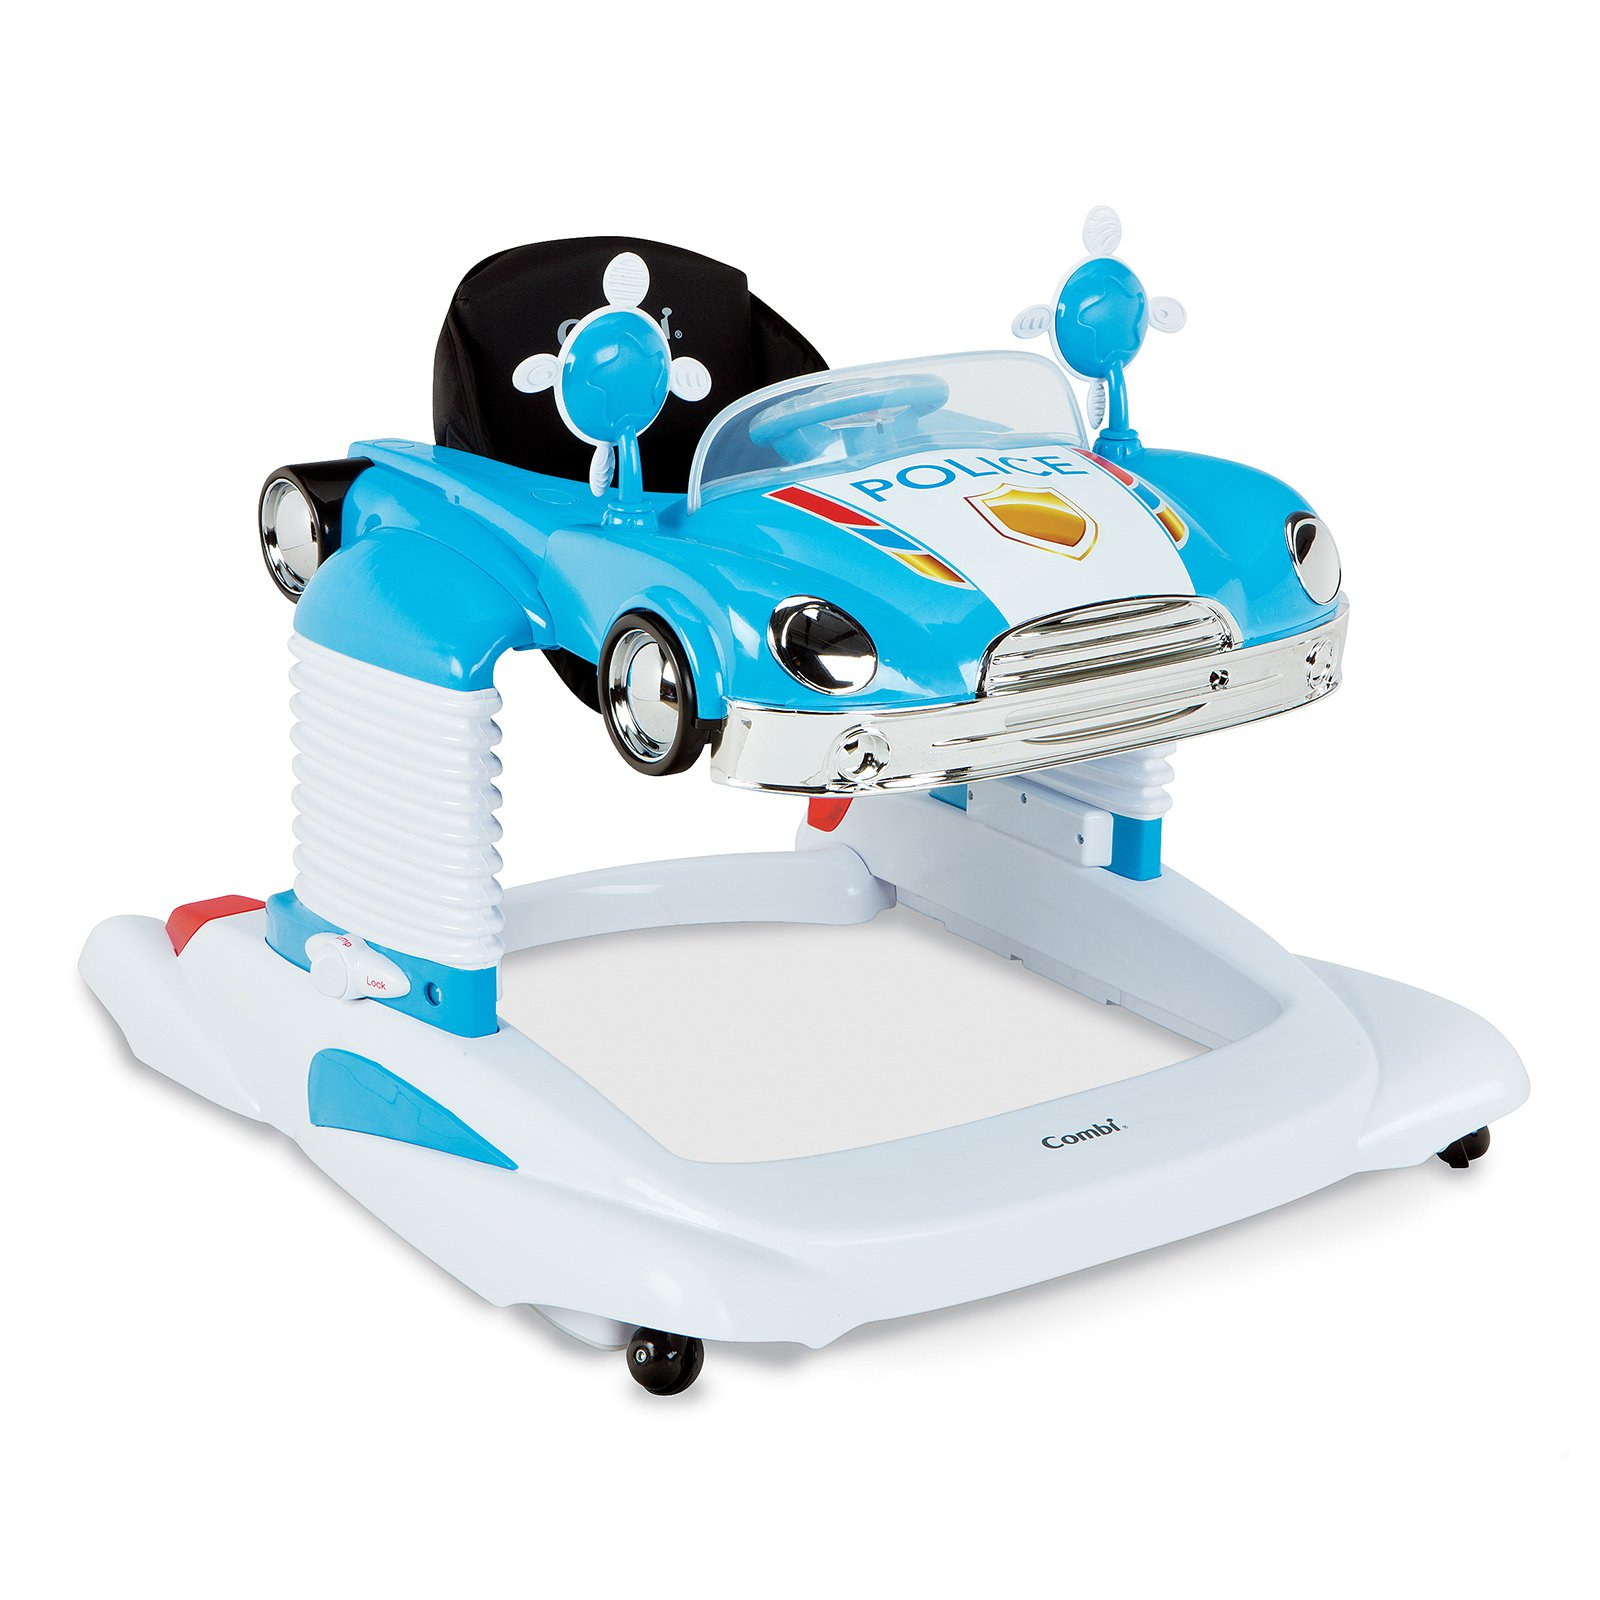 Combi Police Car All In One Activity Walker by Combi